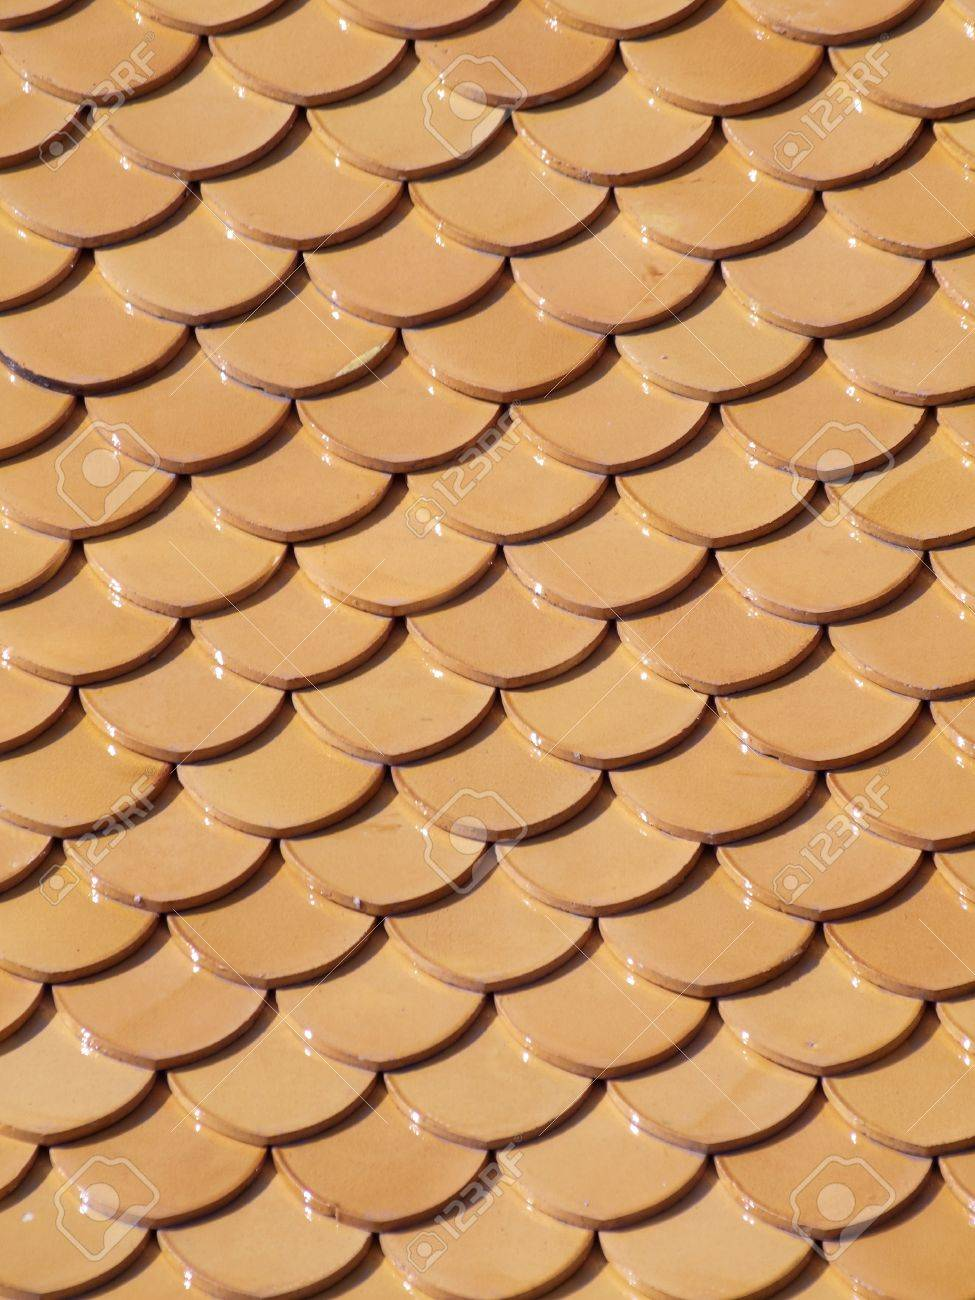 Beautiful Tidiness Of Curved Roof Tile Pattern Stock Photo, Picture ...